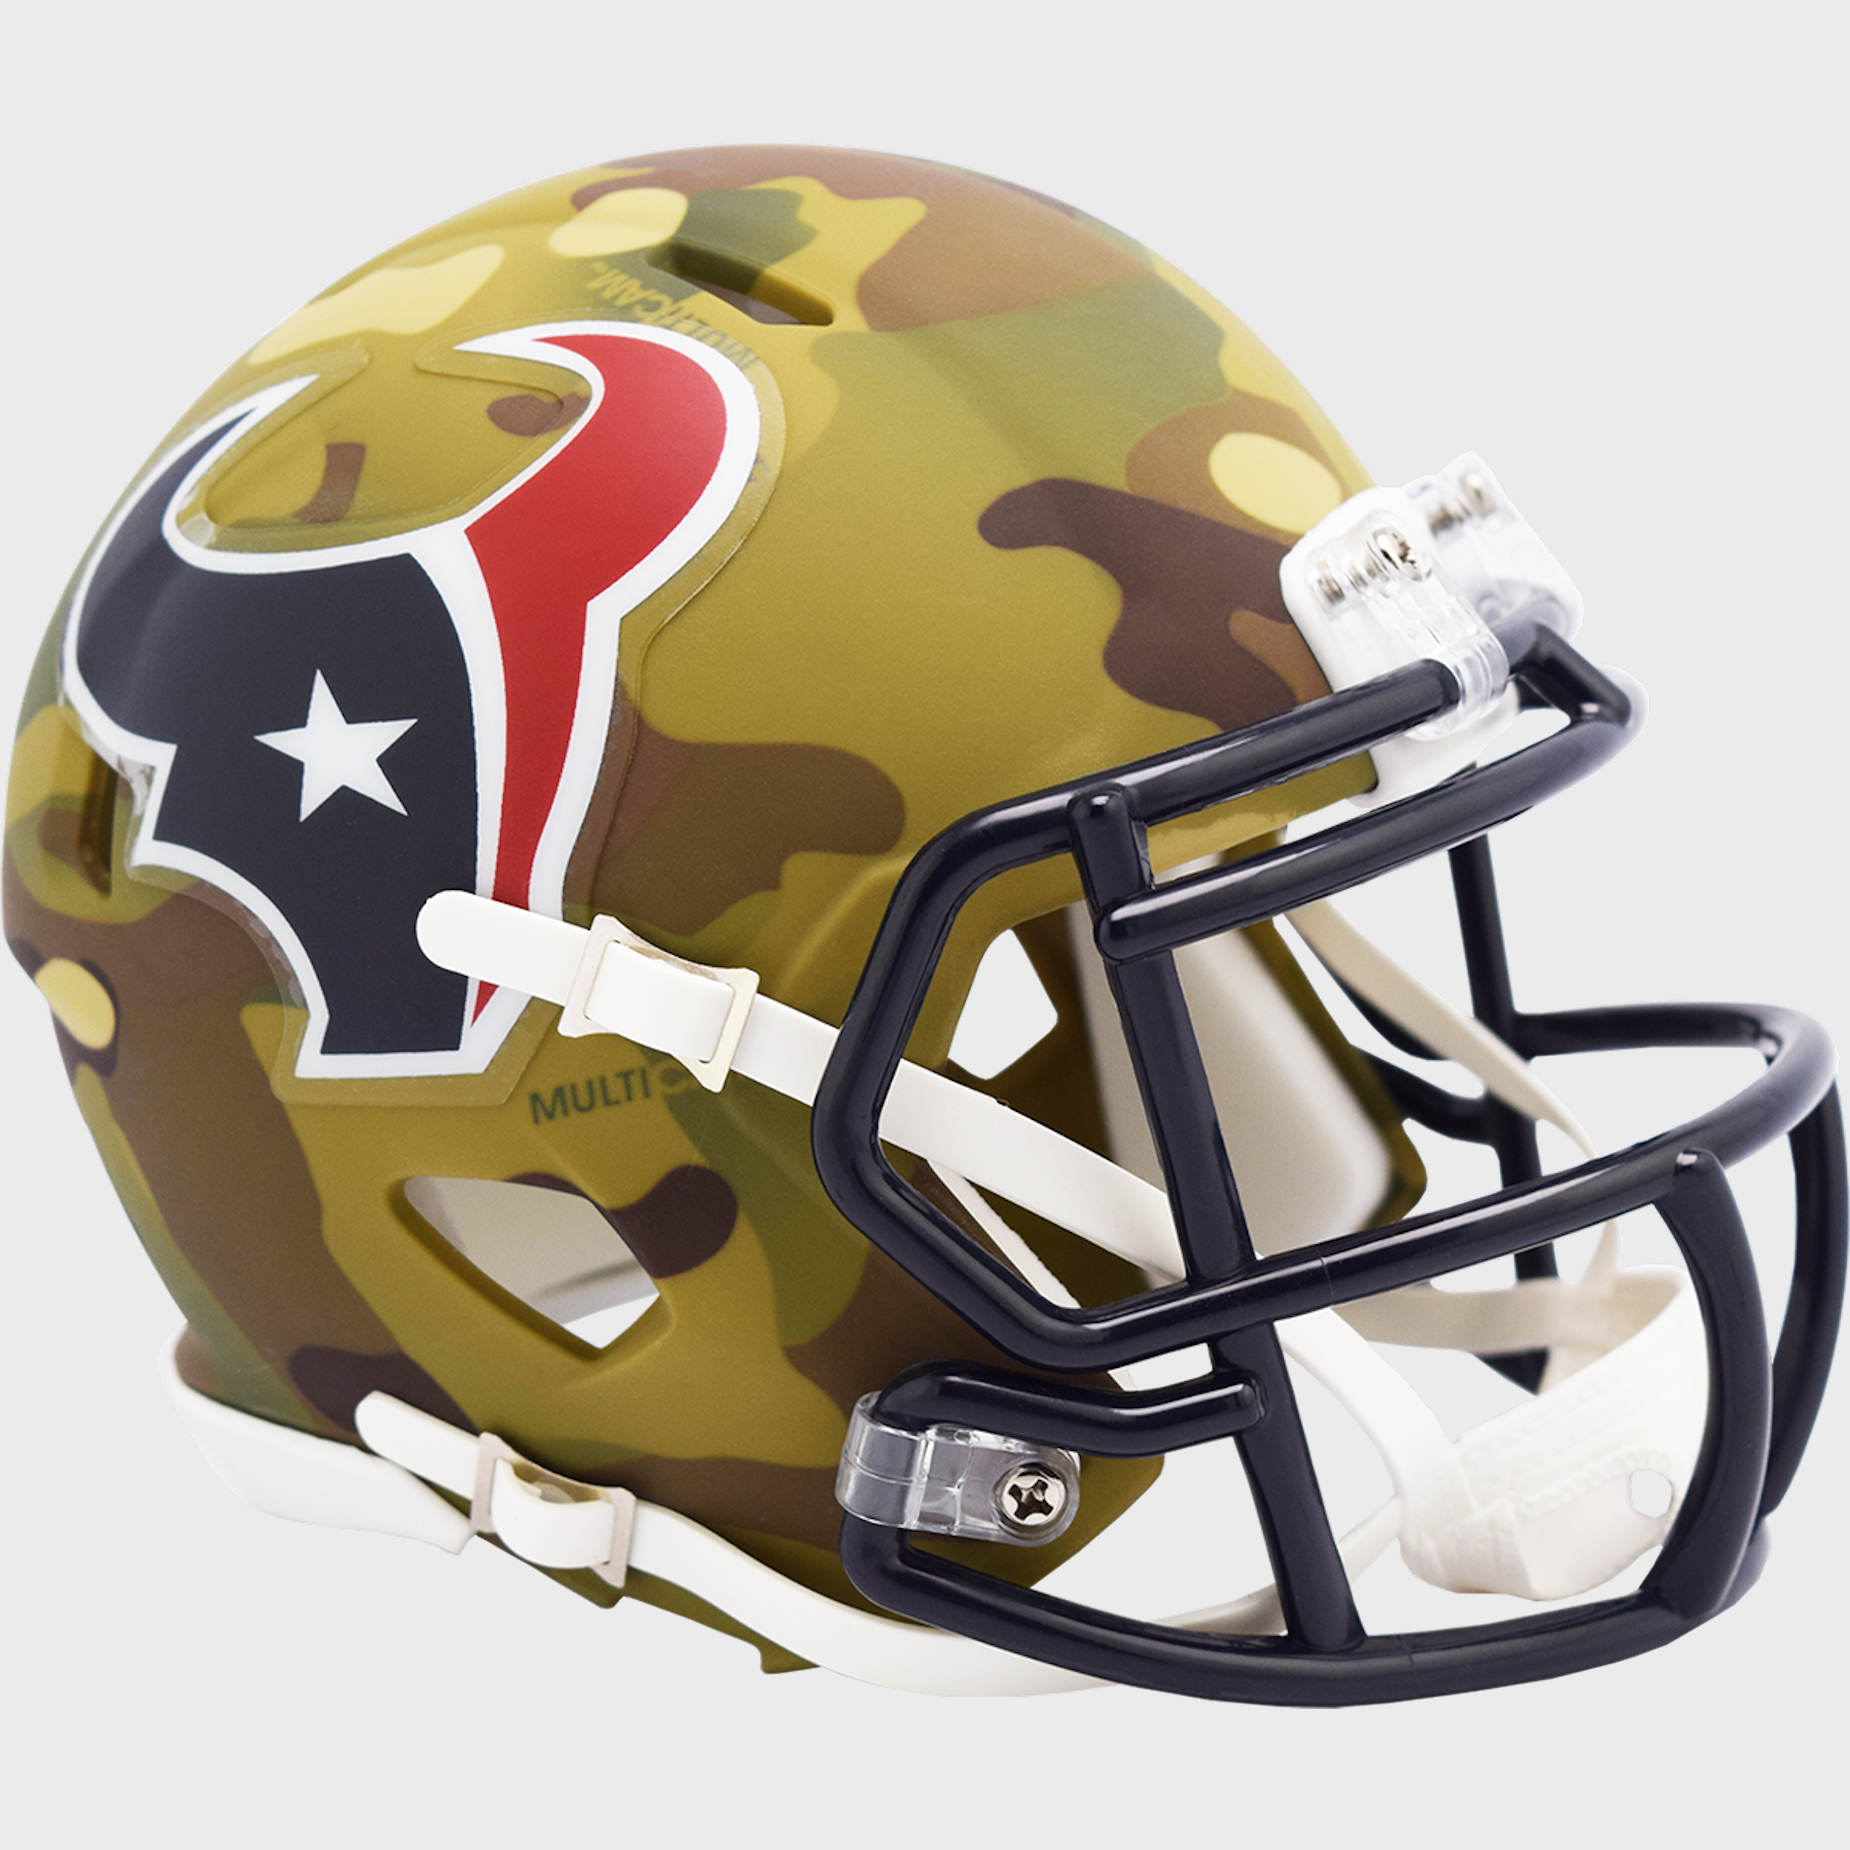 Houston Texans NFL Mini Speed Football Helmet <B>CAMO</B>